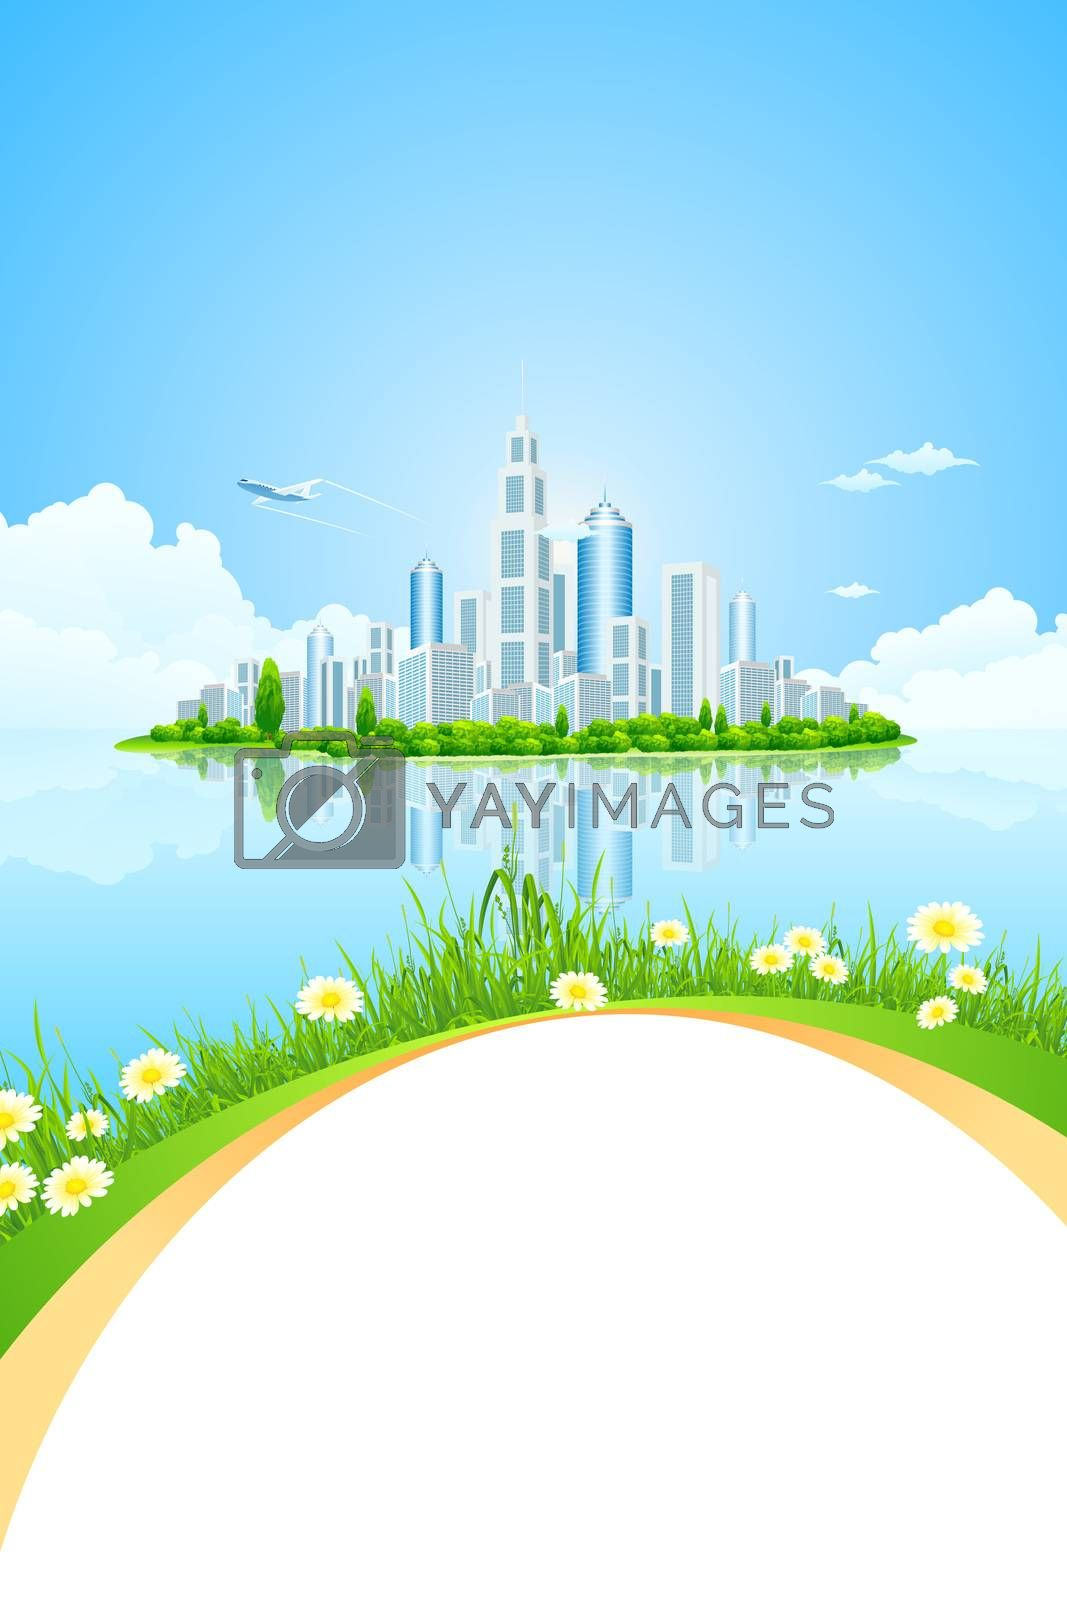 City Landscape Island with Green Trees by WaD